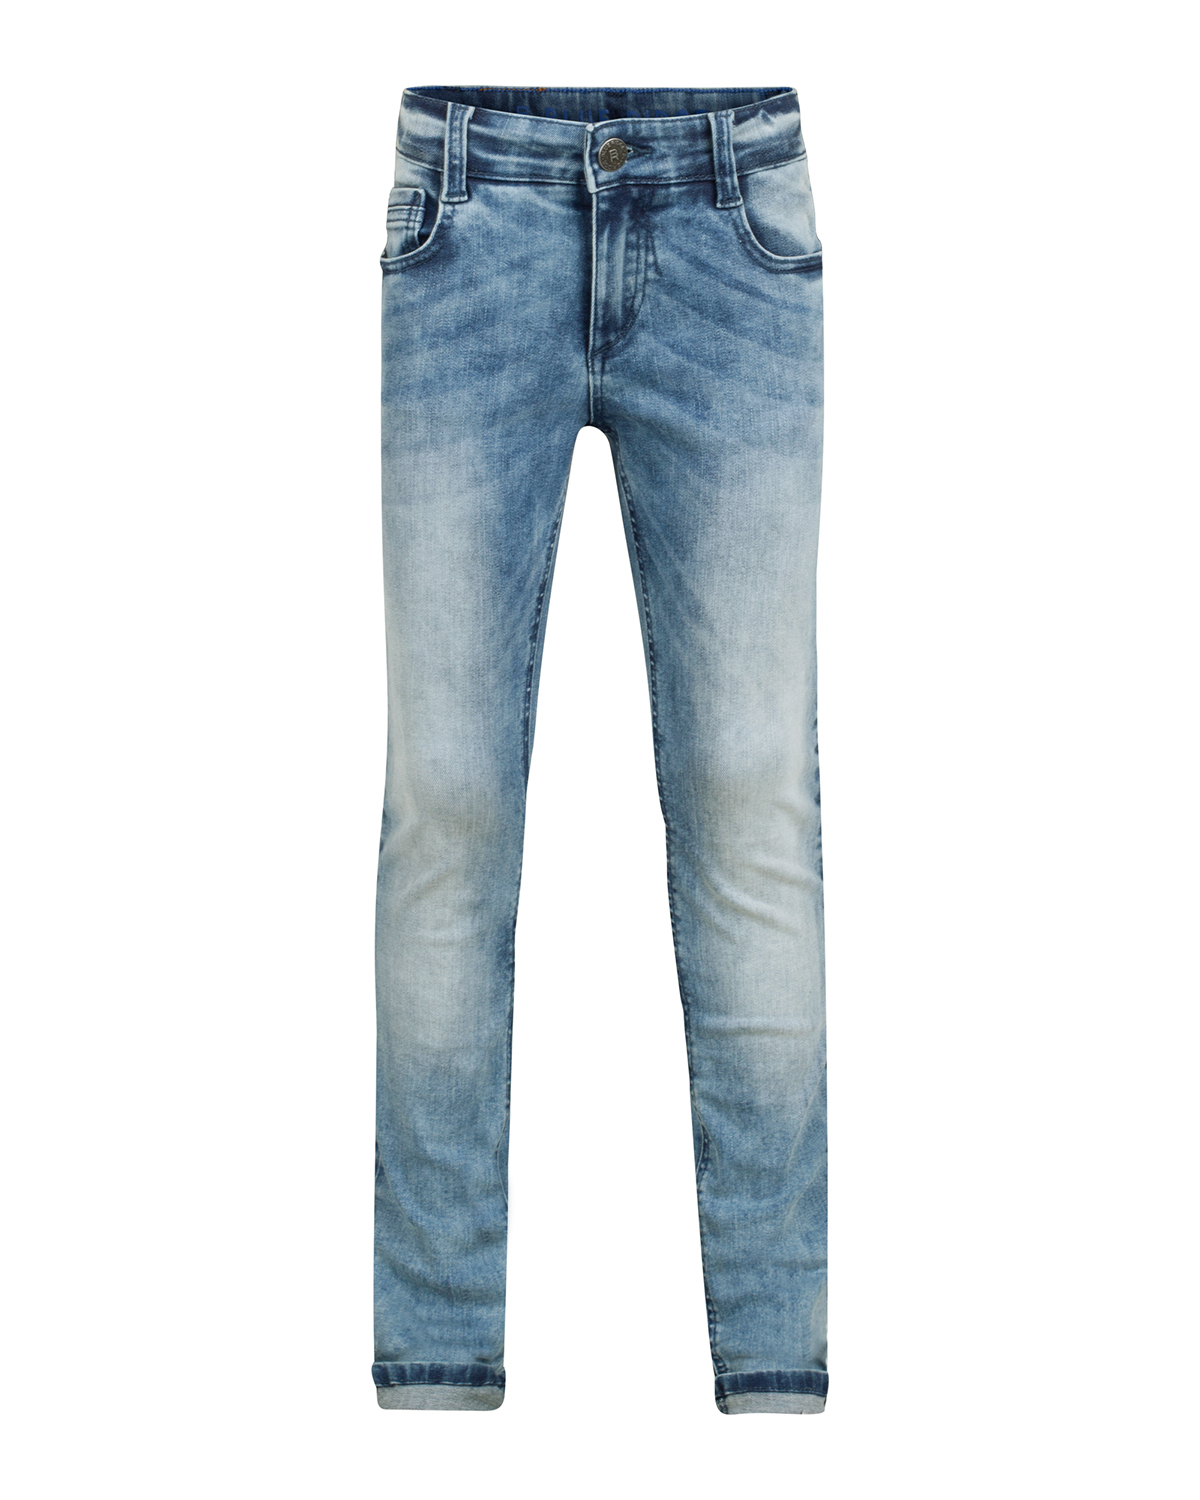 Jongens super skinny power stretch jeans